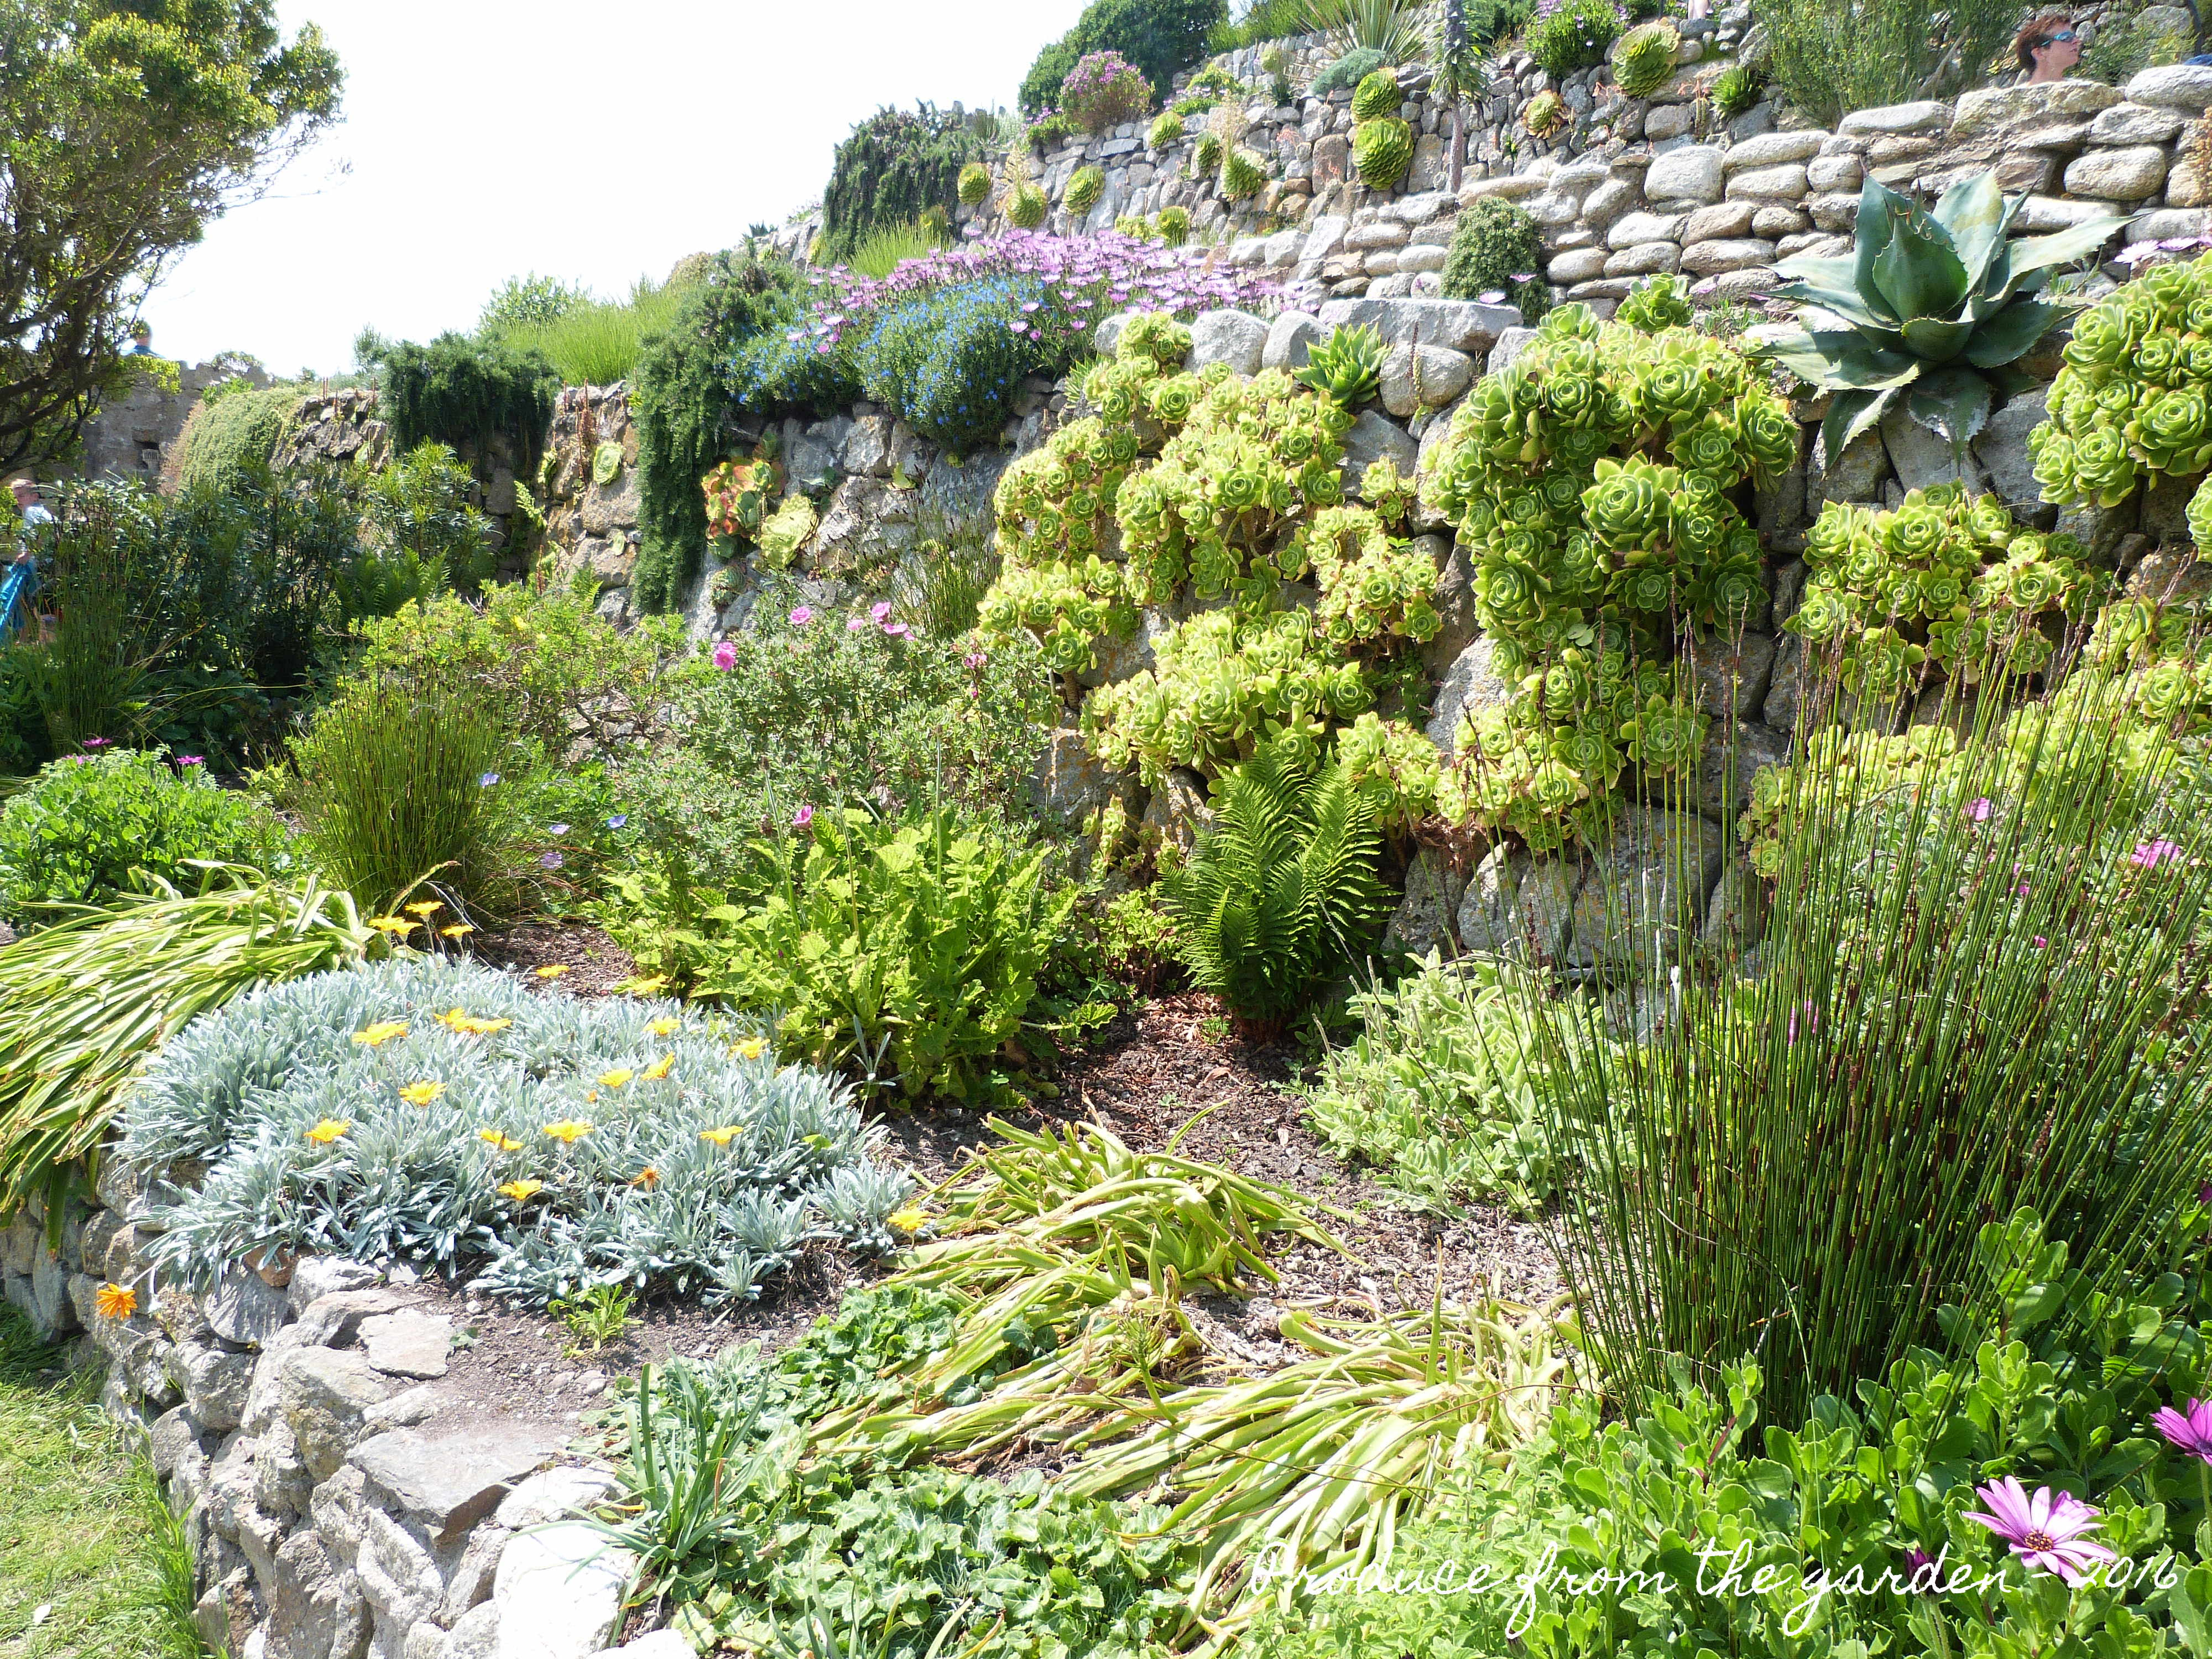 St Michael S Mount Gardens Produce From The Garden Interiors Inside Ideas Interiors design about Everything [magnanprojects.com]